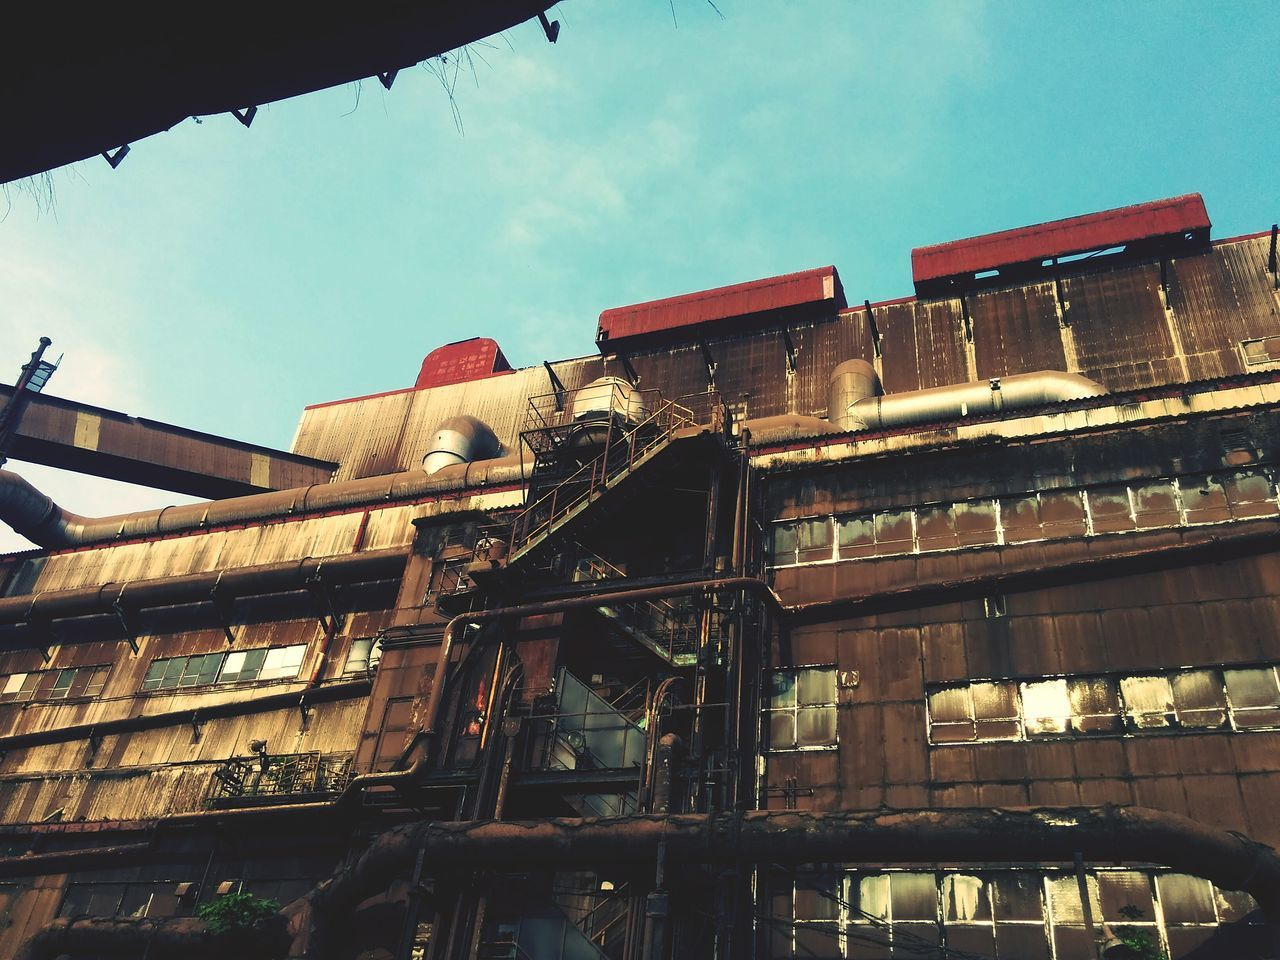 architecture, low angle view, building exterior, built structure, sky, no people, outdoors, day